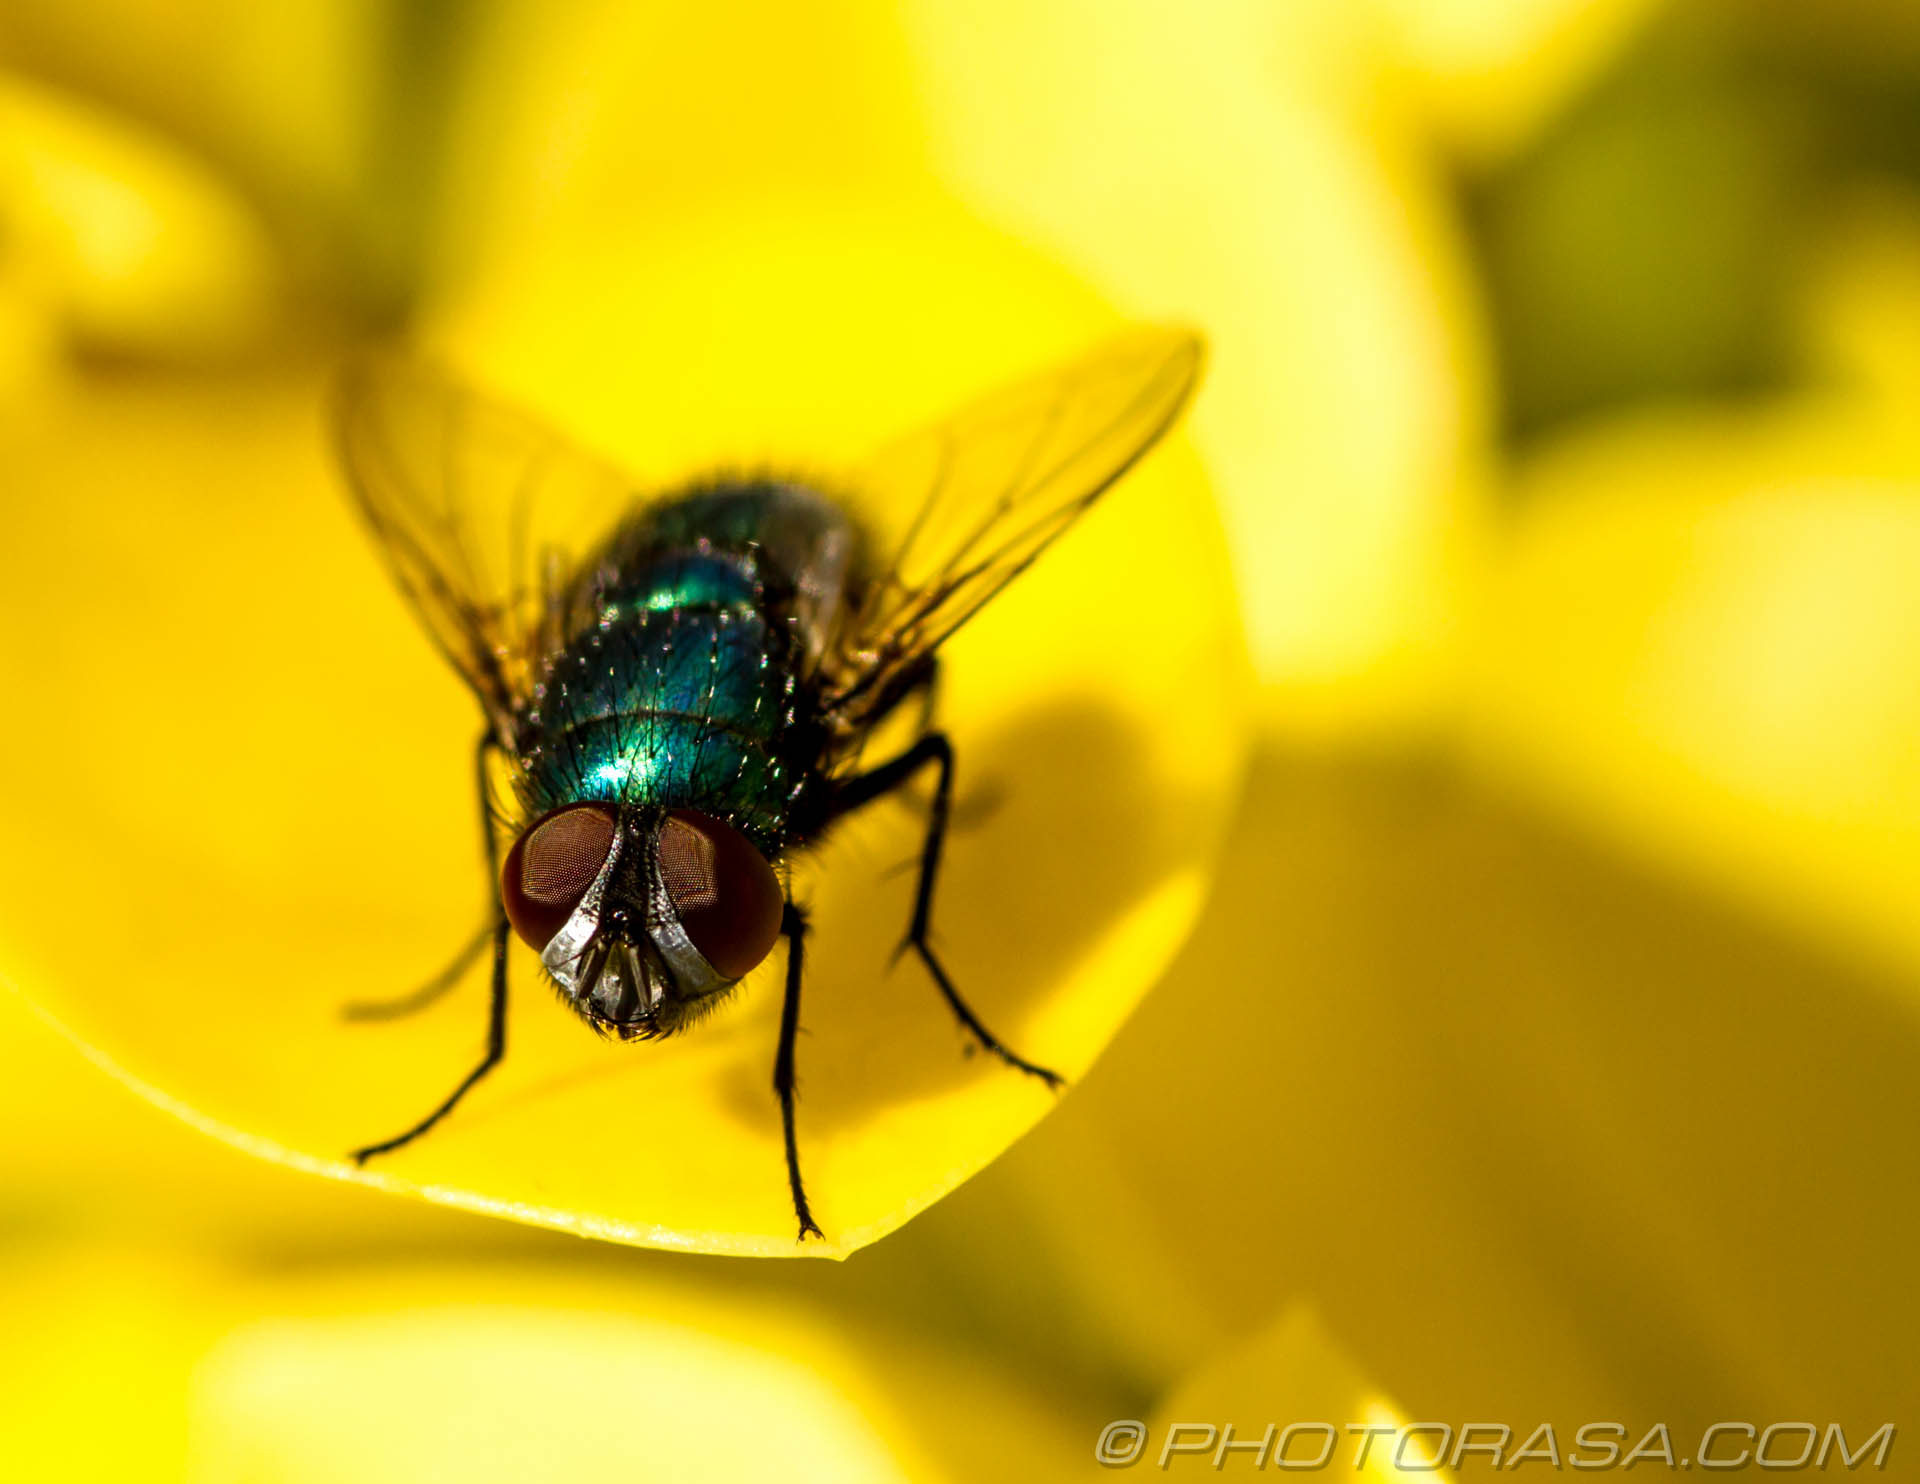 https://photorasa.com/greenbottle-fly-yellow/hairy-greenbottle-fly-eyes/